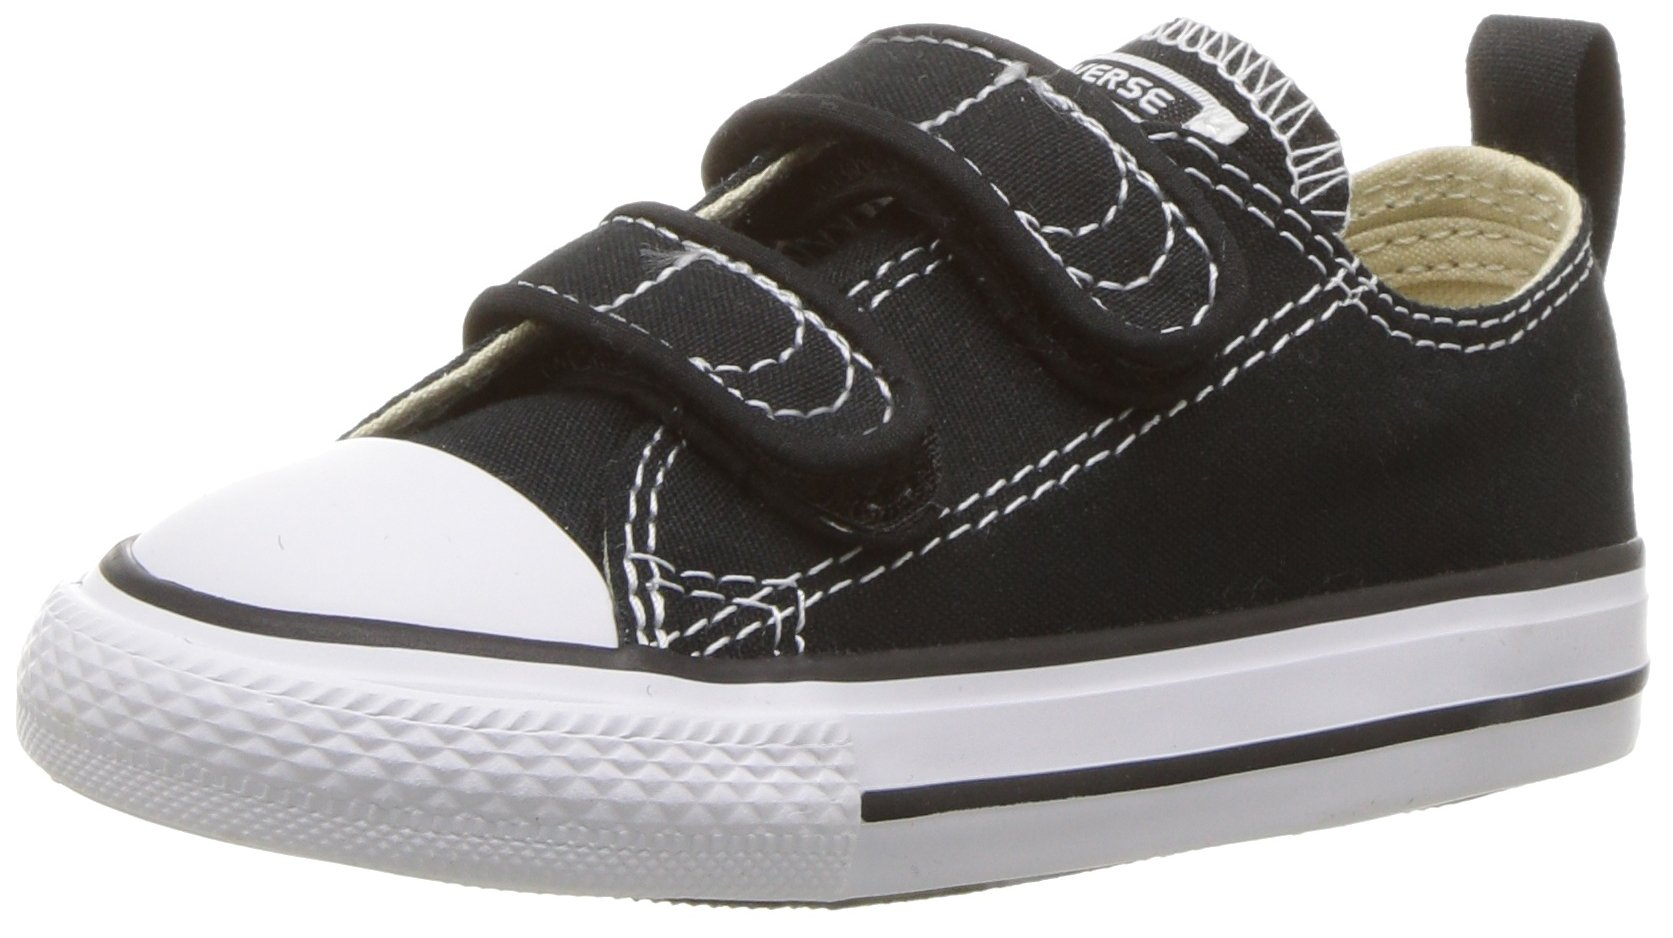 Converse Boys' Chuck Taylor All Star 2V Low Top Sneaker black 7 M US Toddler